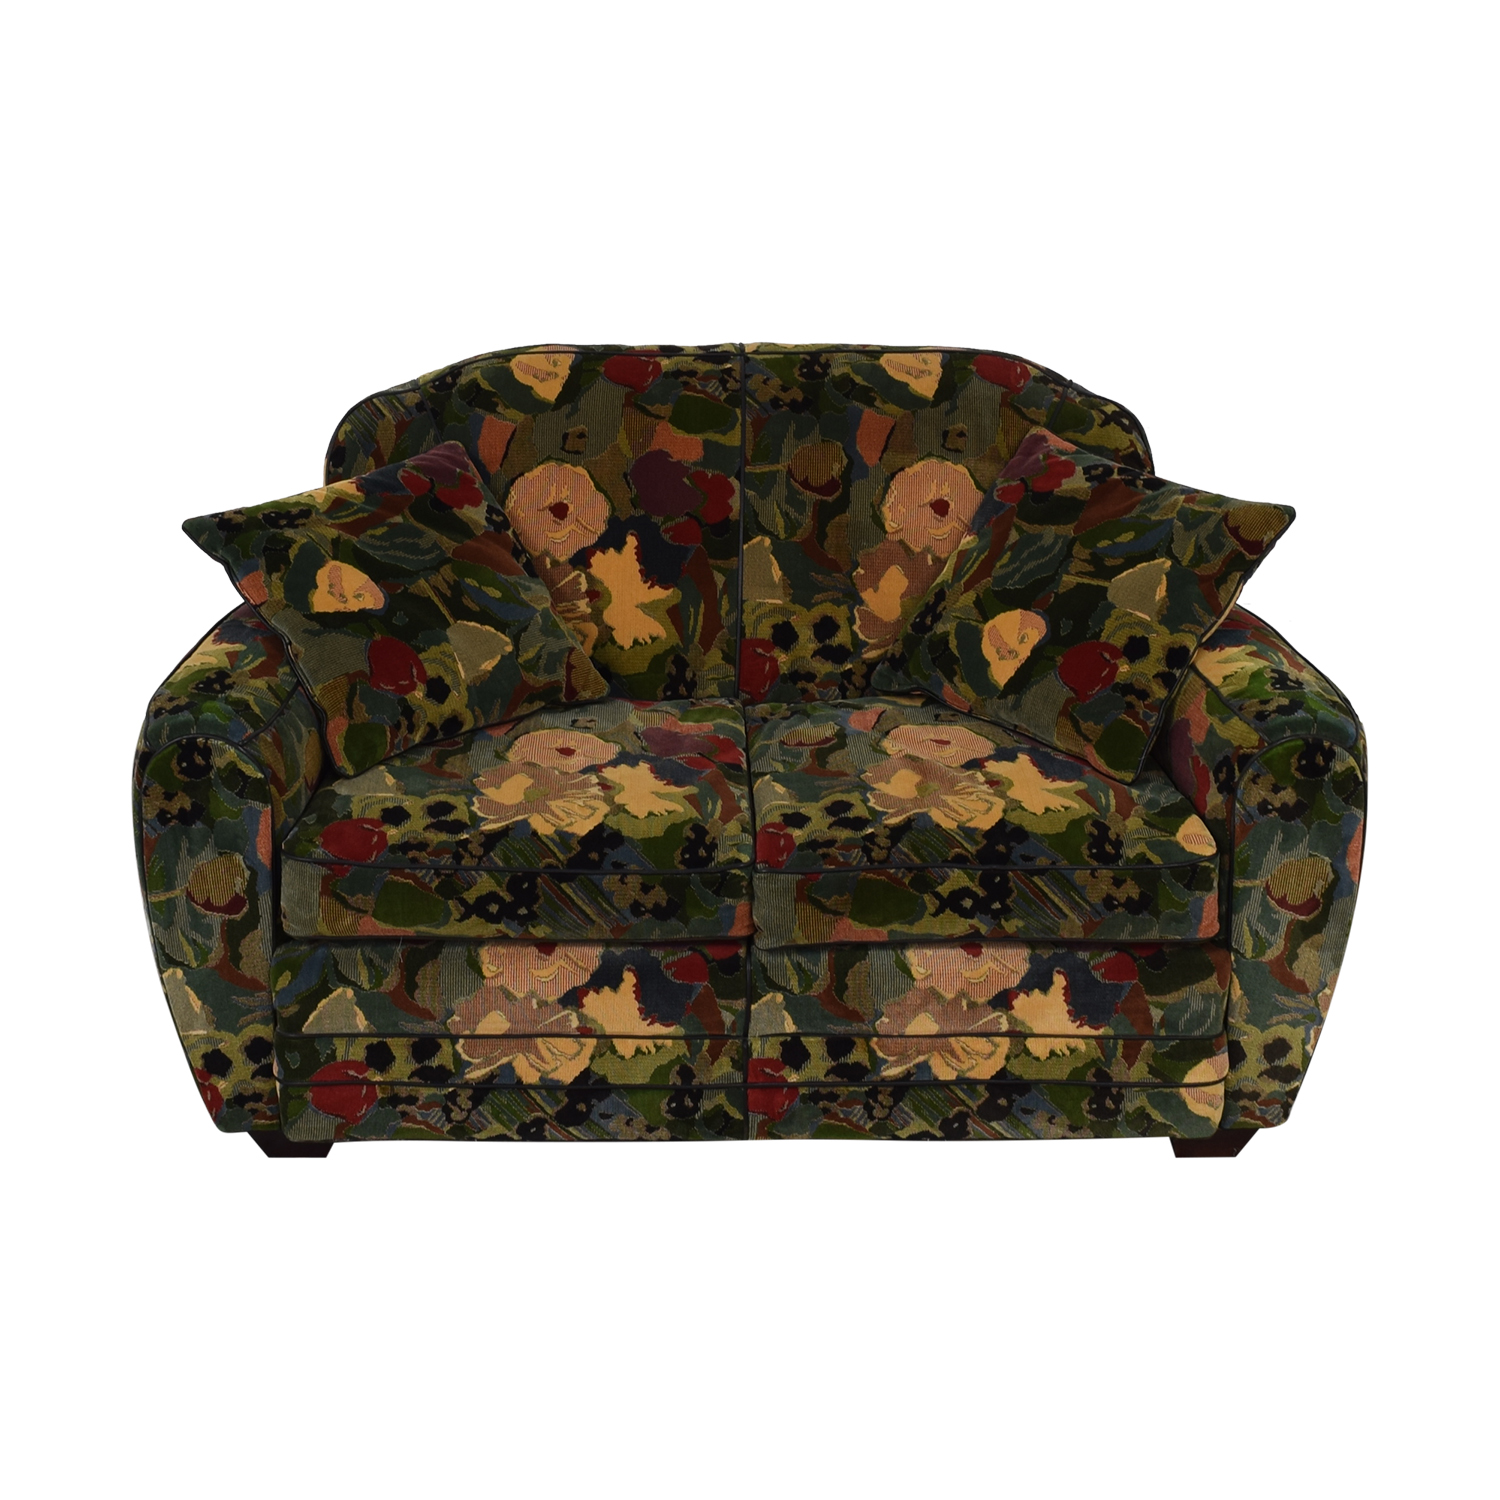 Old Hickory Tannery Old Hickory Tannery Floral Loveseat used